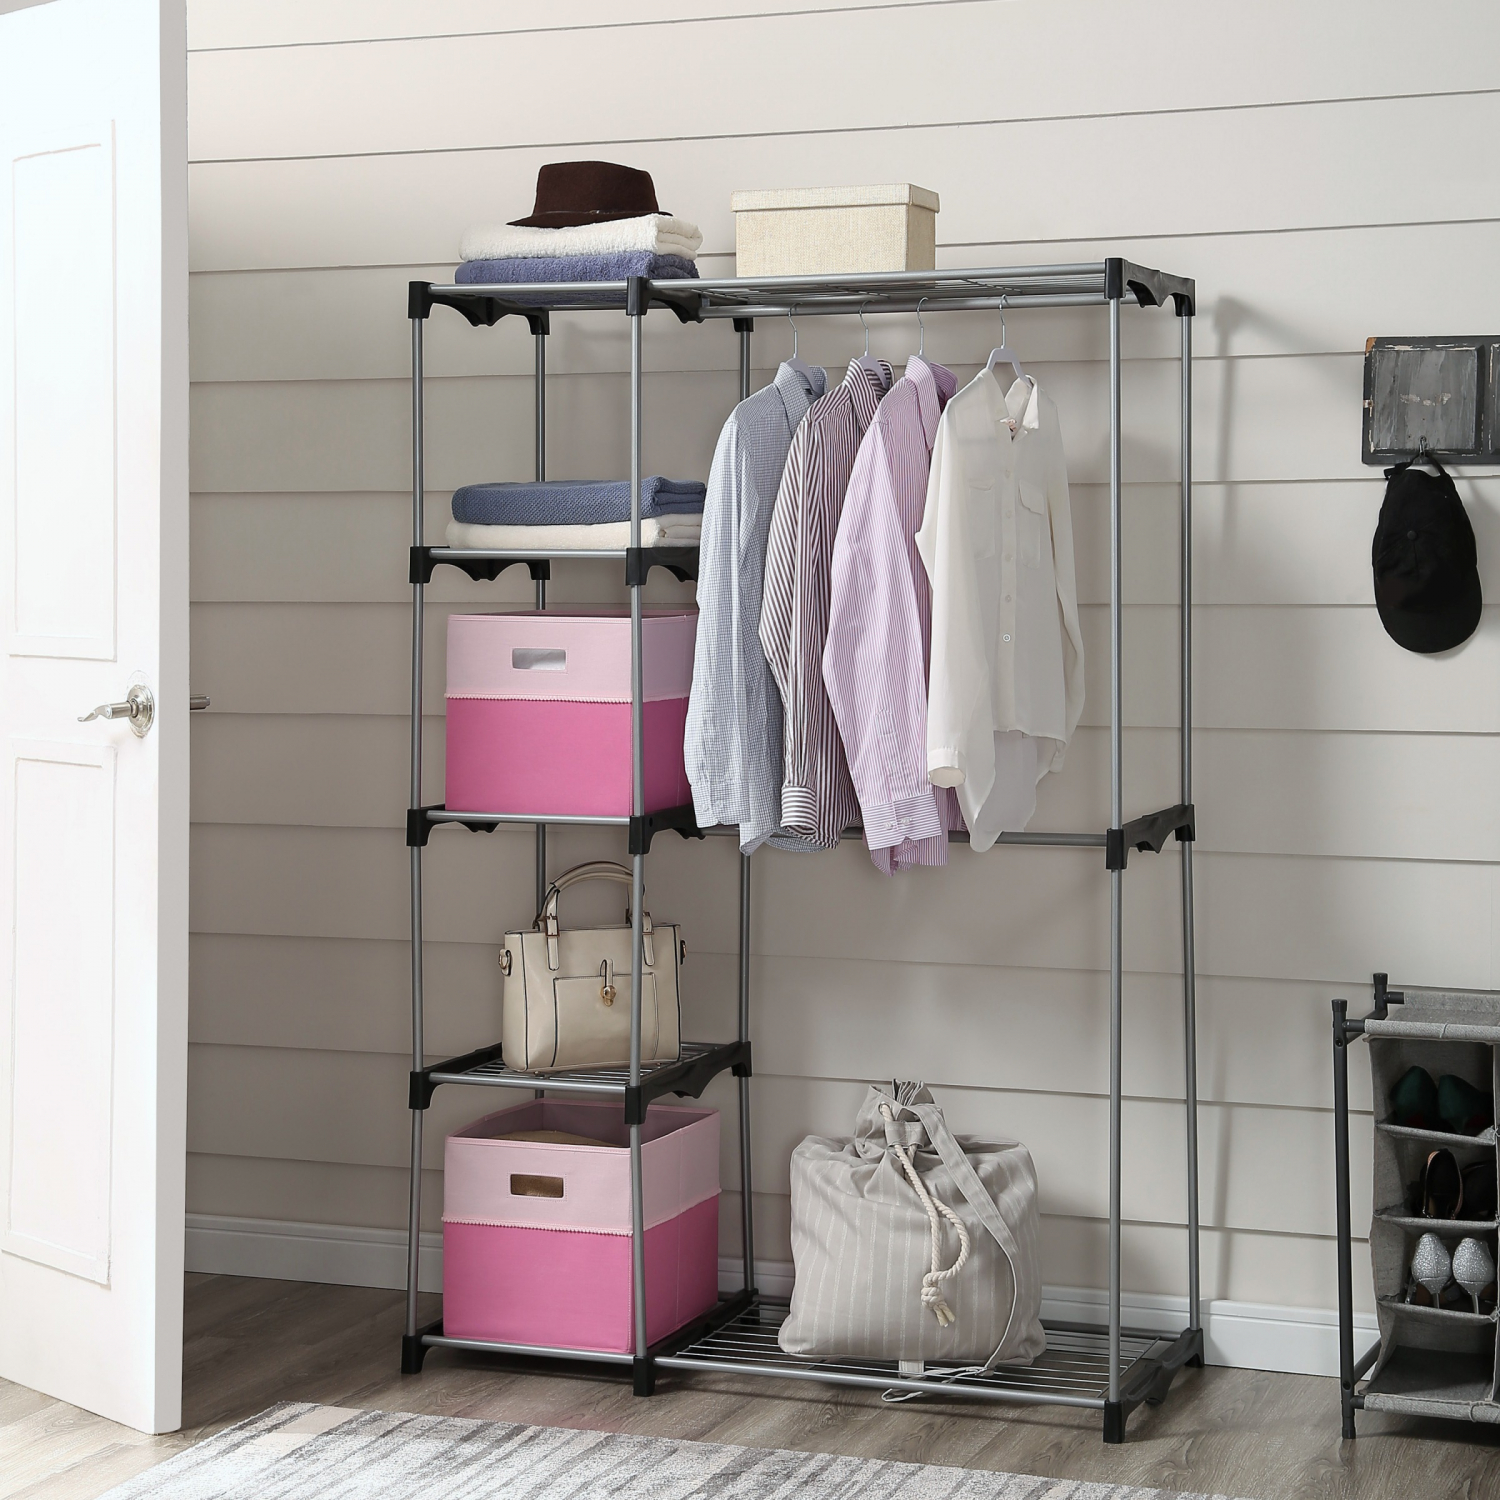 Details About Mainstays Wire Shelf Closet Organizer 2 Tier Easy To Assemble